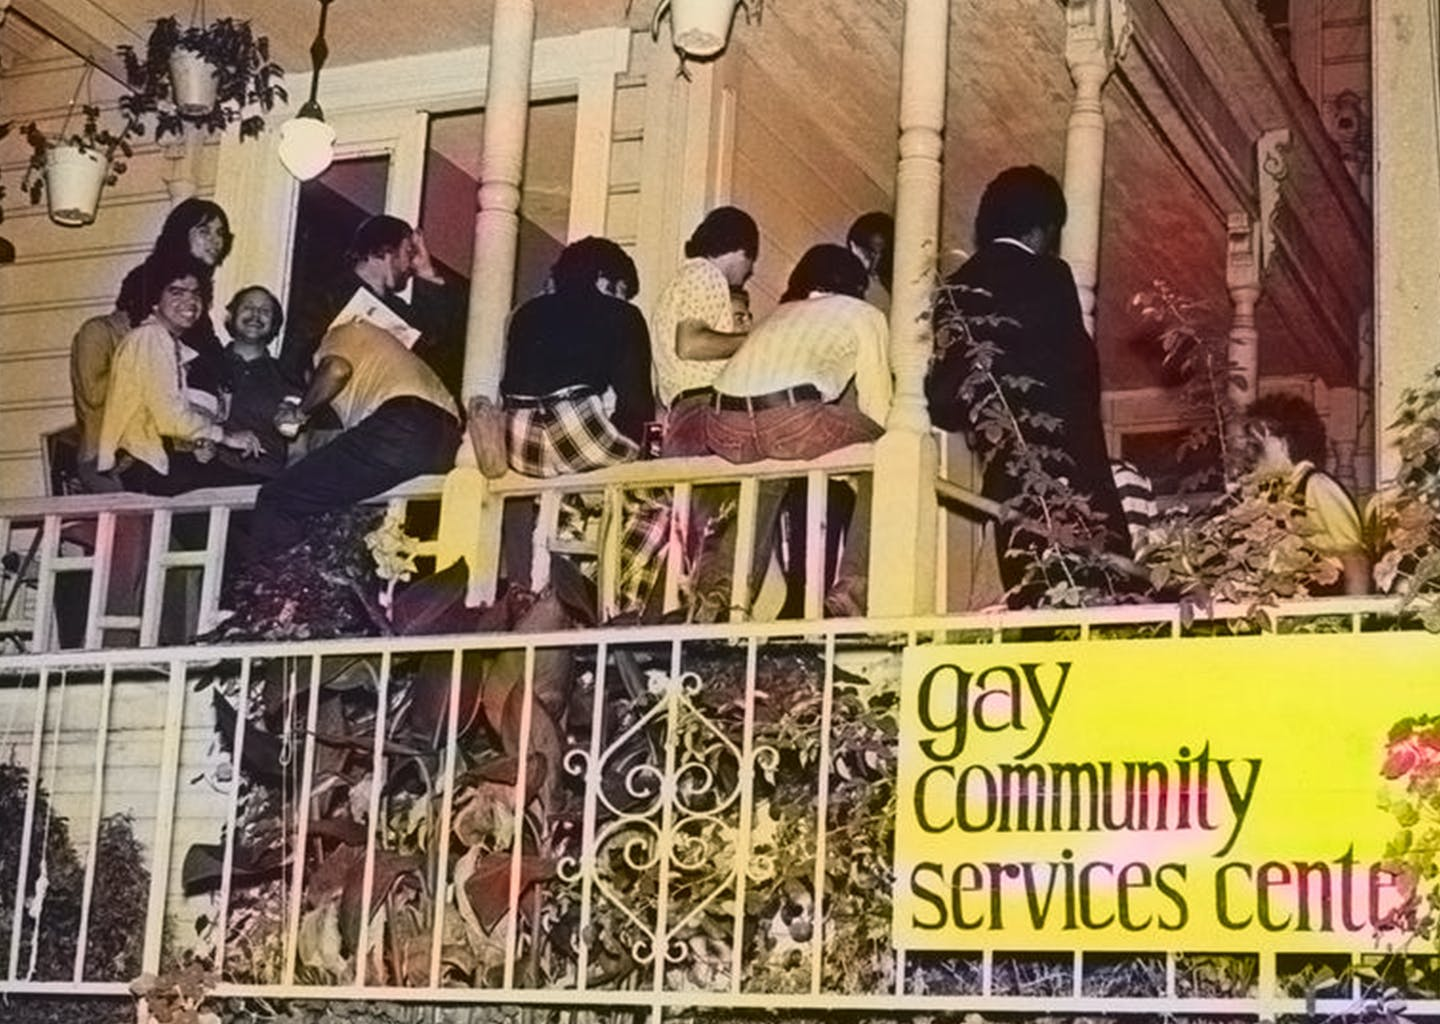 The Los Angeles Gay Community Services Center (GCSC), 1974. Photo by Pat Rocco.